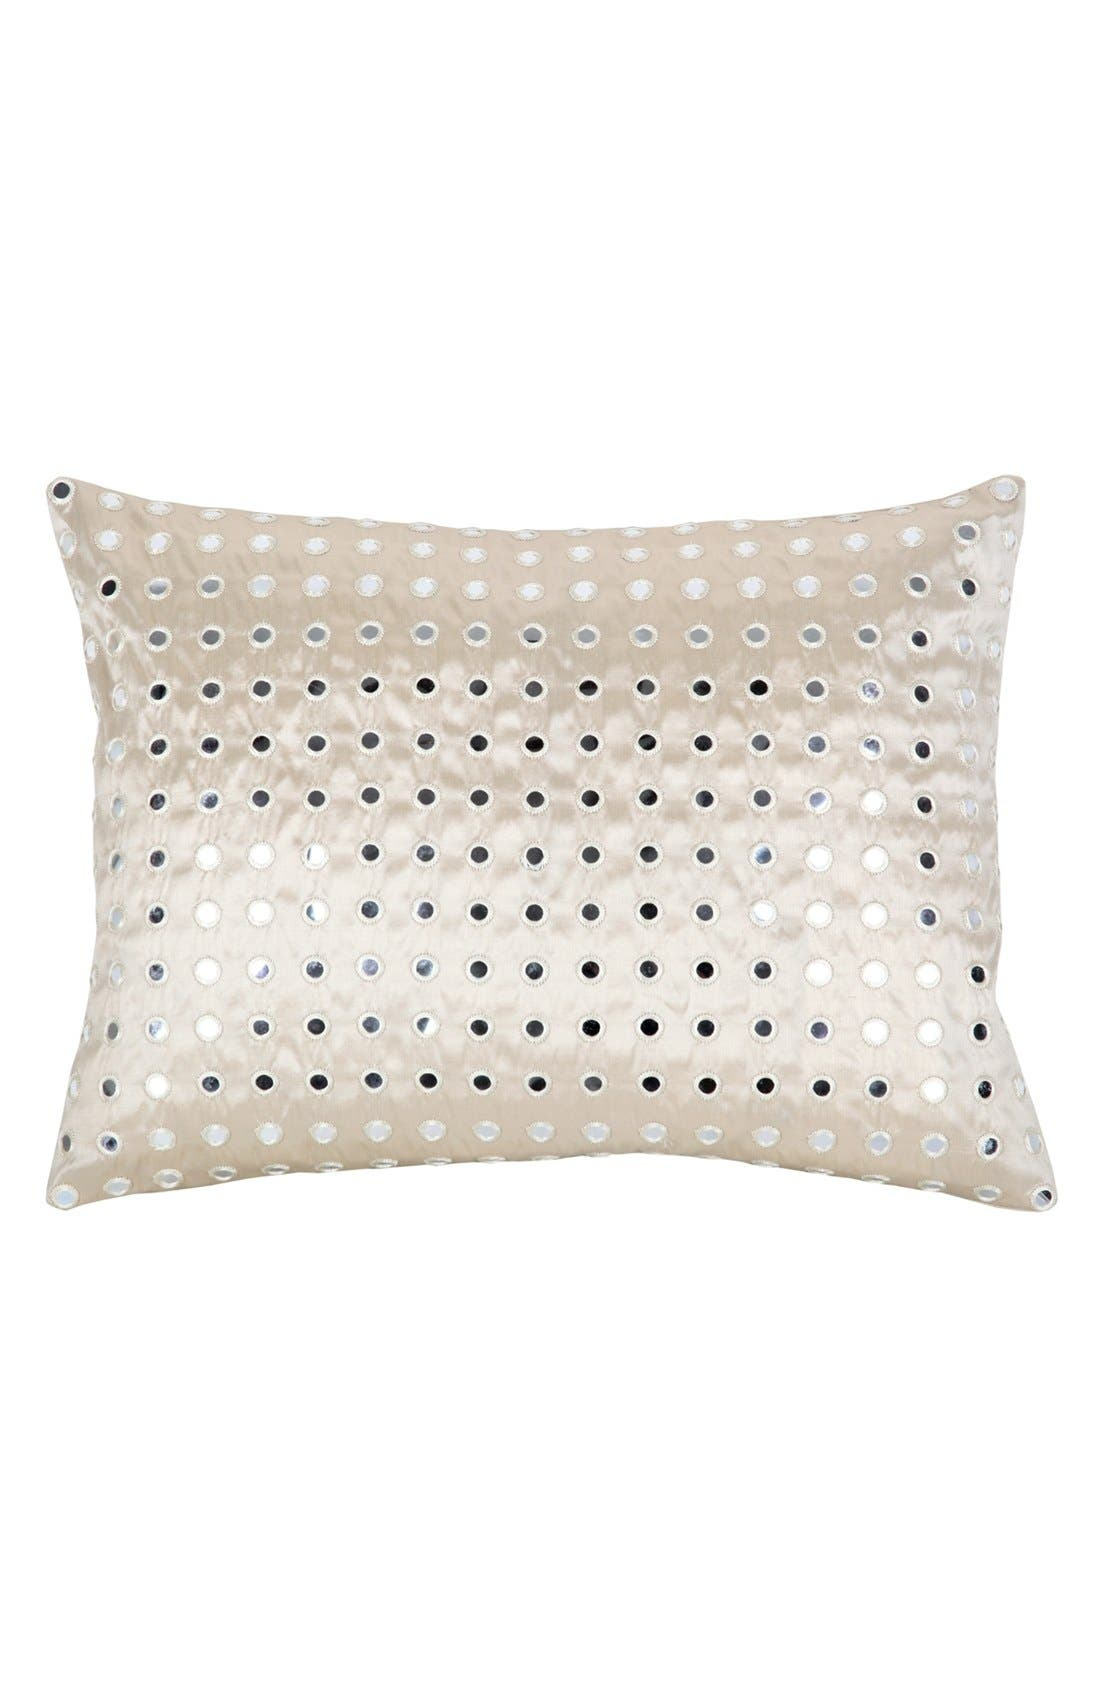 Alternate Image 1 Selected - Blissliving Home 'Aliyah' Silk Dupioni Pillow (Online Only)